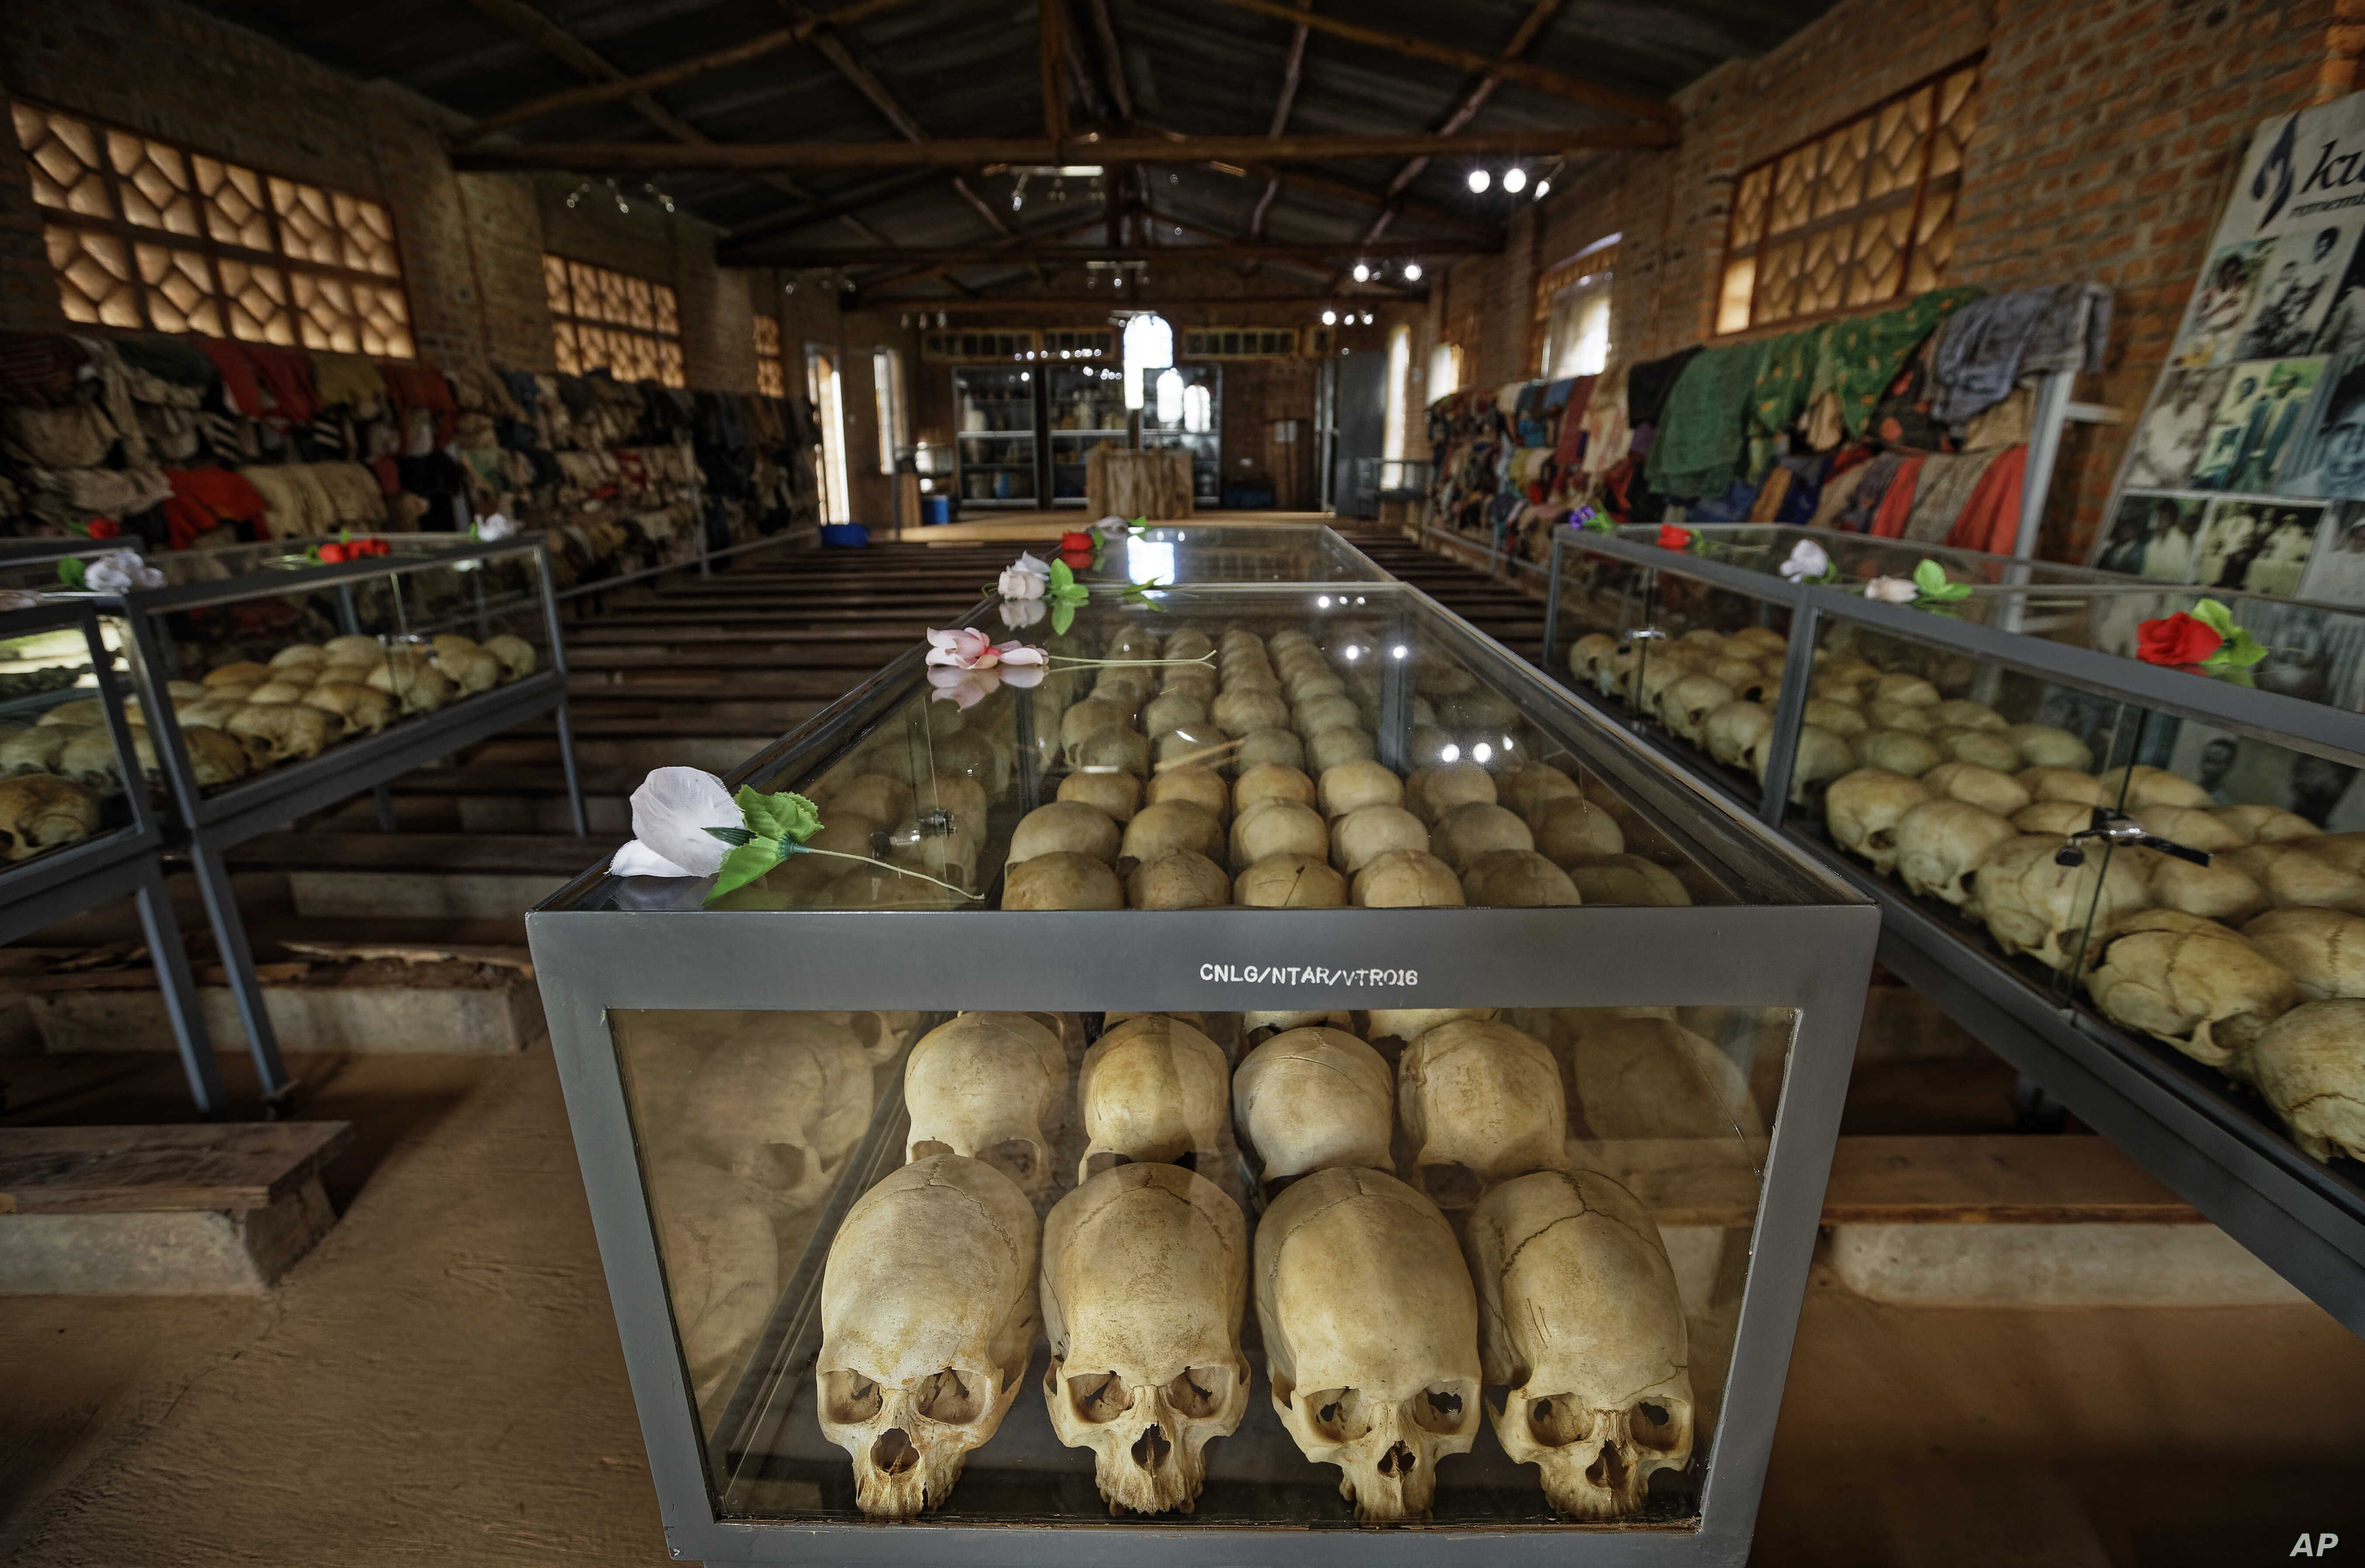 Skulls of some of those who were slaughtered as they sought refuge in the church sit in glass cases, kept as a memorial to the thousands who were killed in the 1994 genocide in Rwanda.